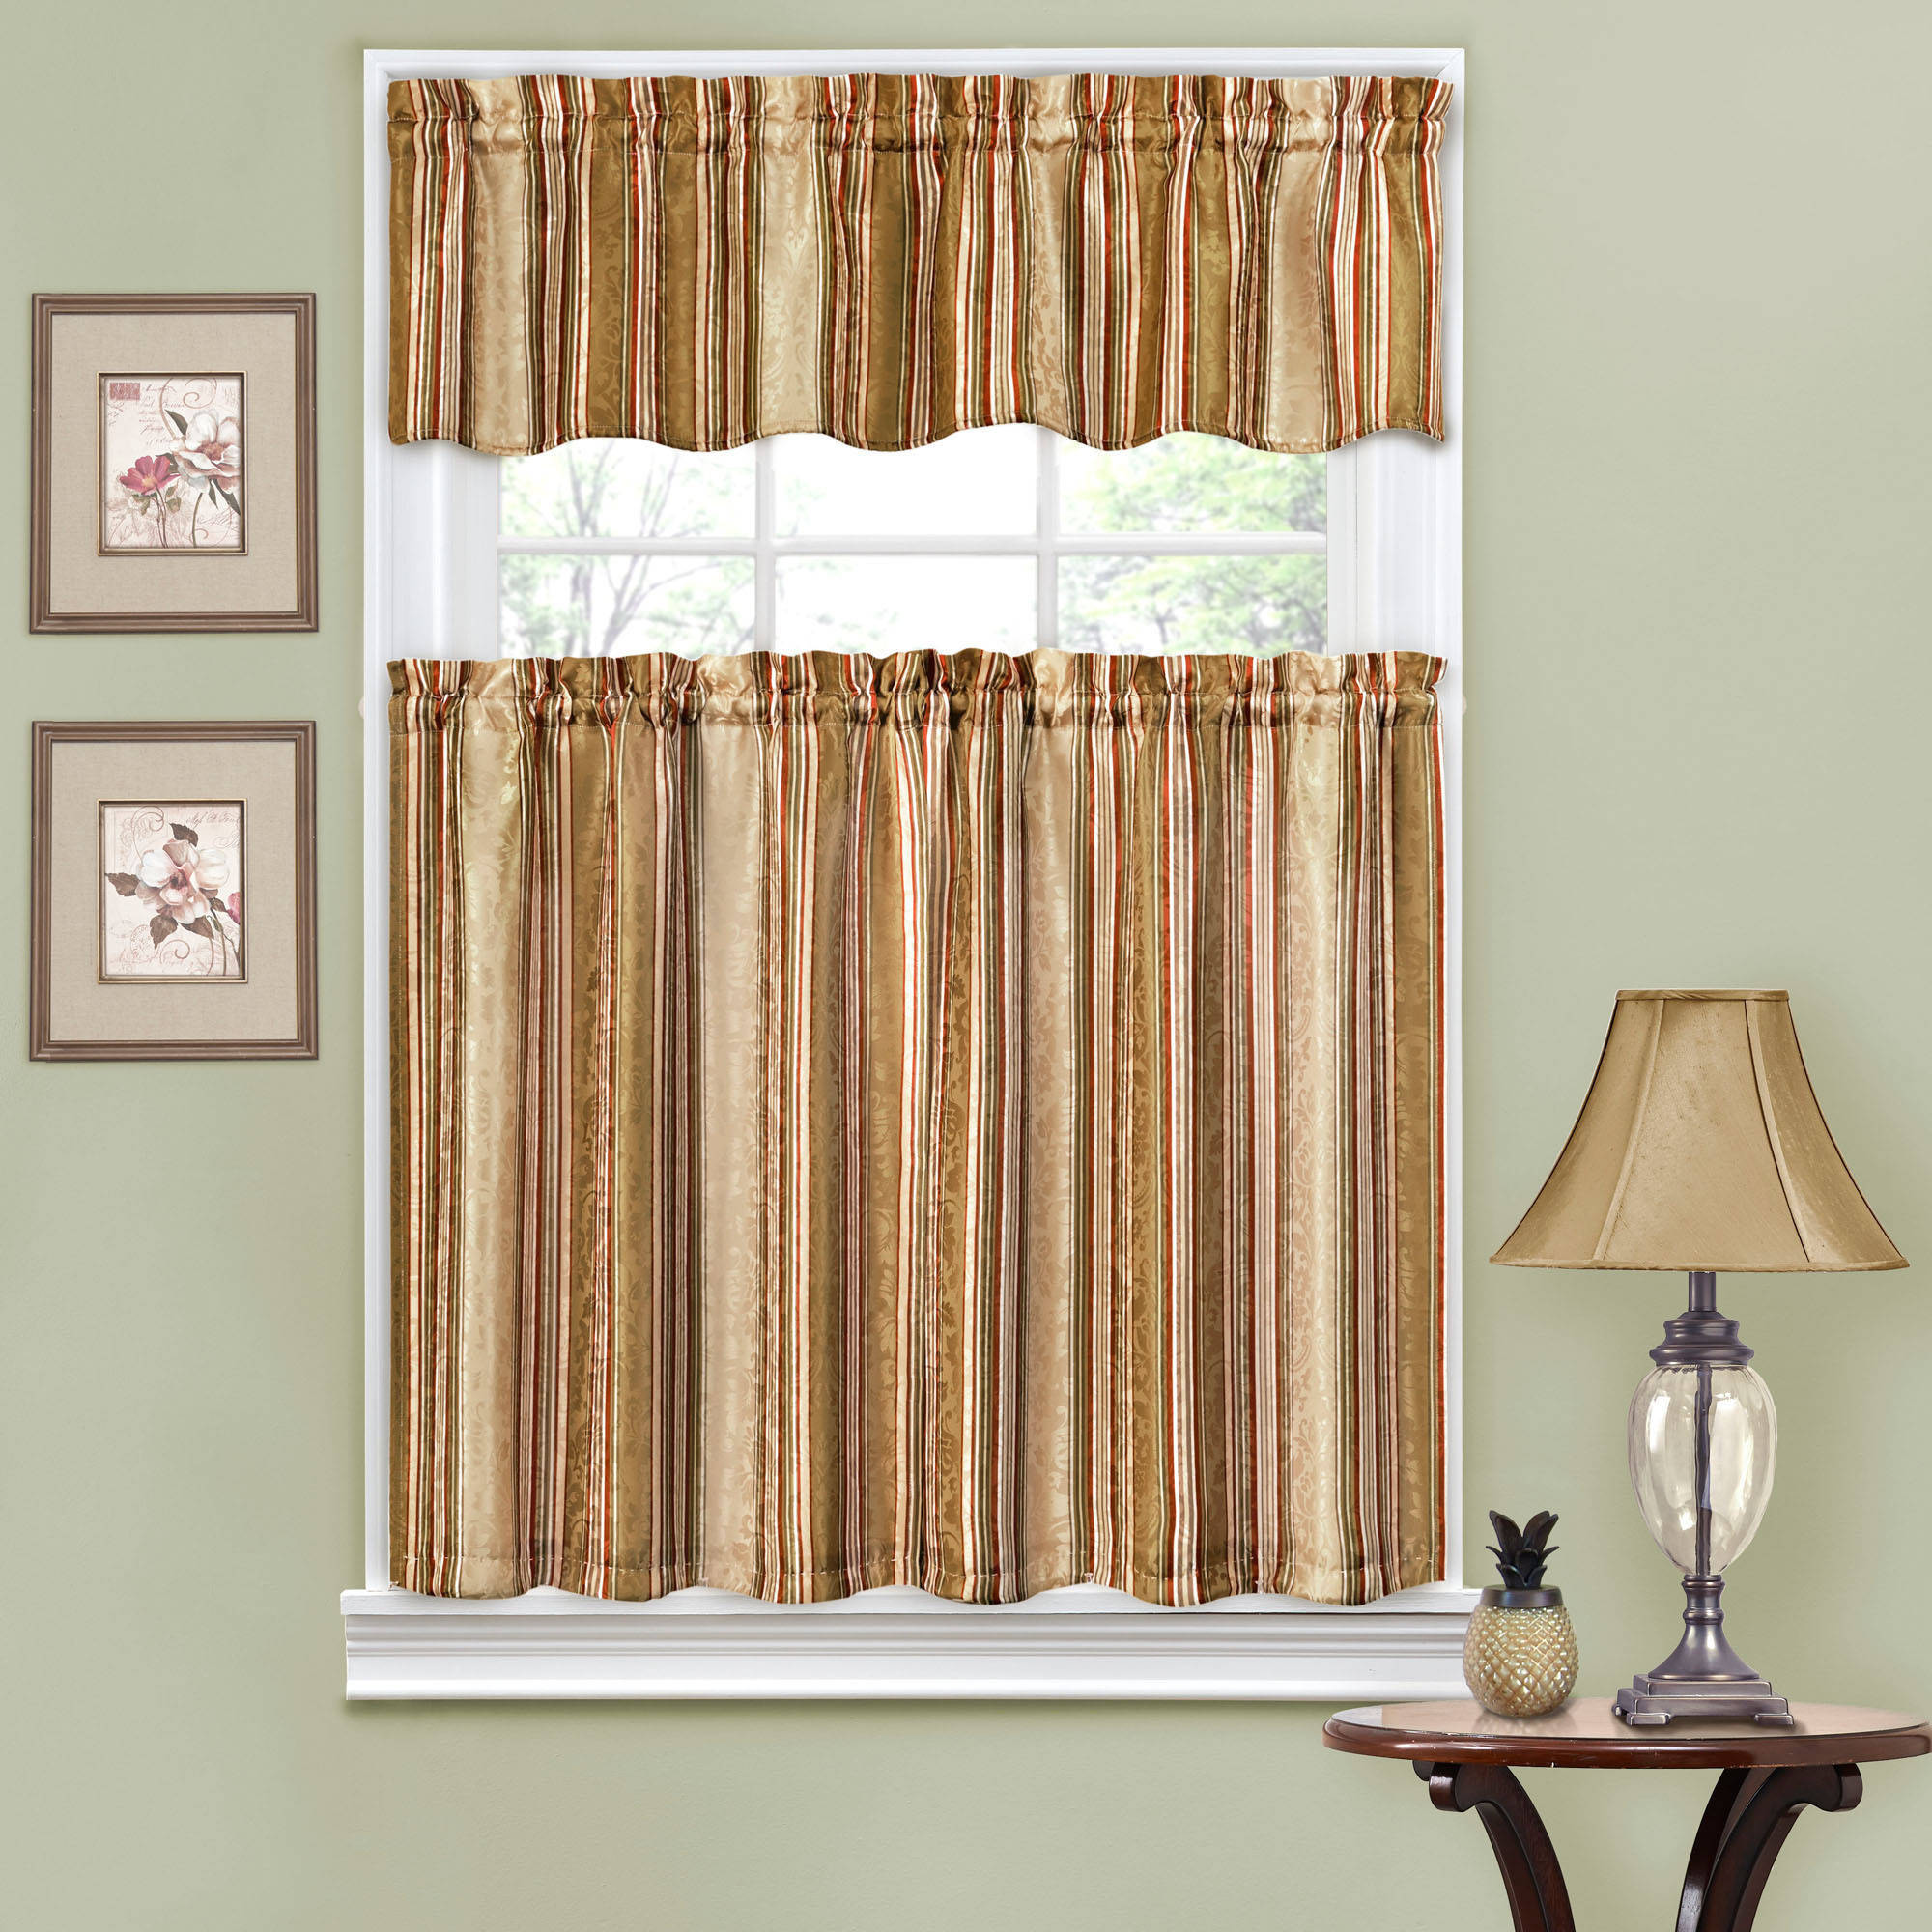 Kitchen Tier Curtains Sets Fleetwood Kitchen Curtains Set Of 2 With Valence